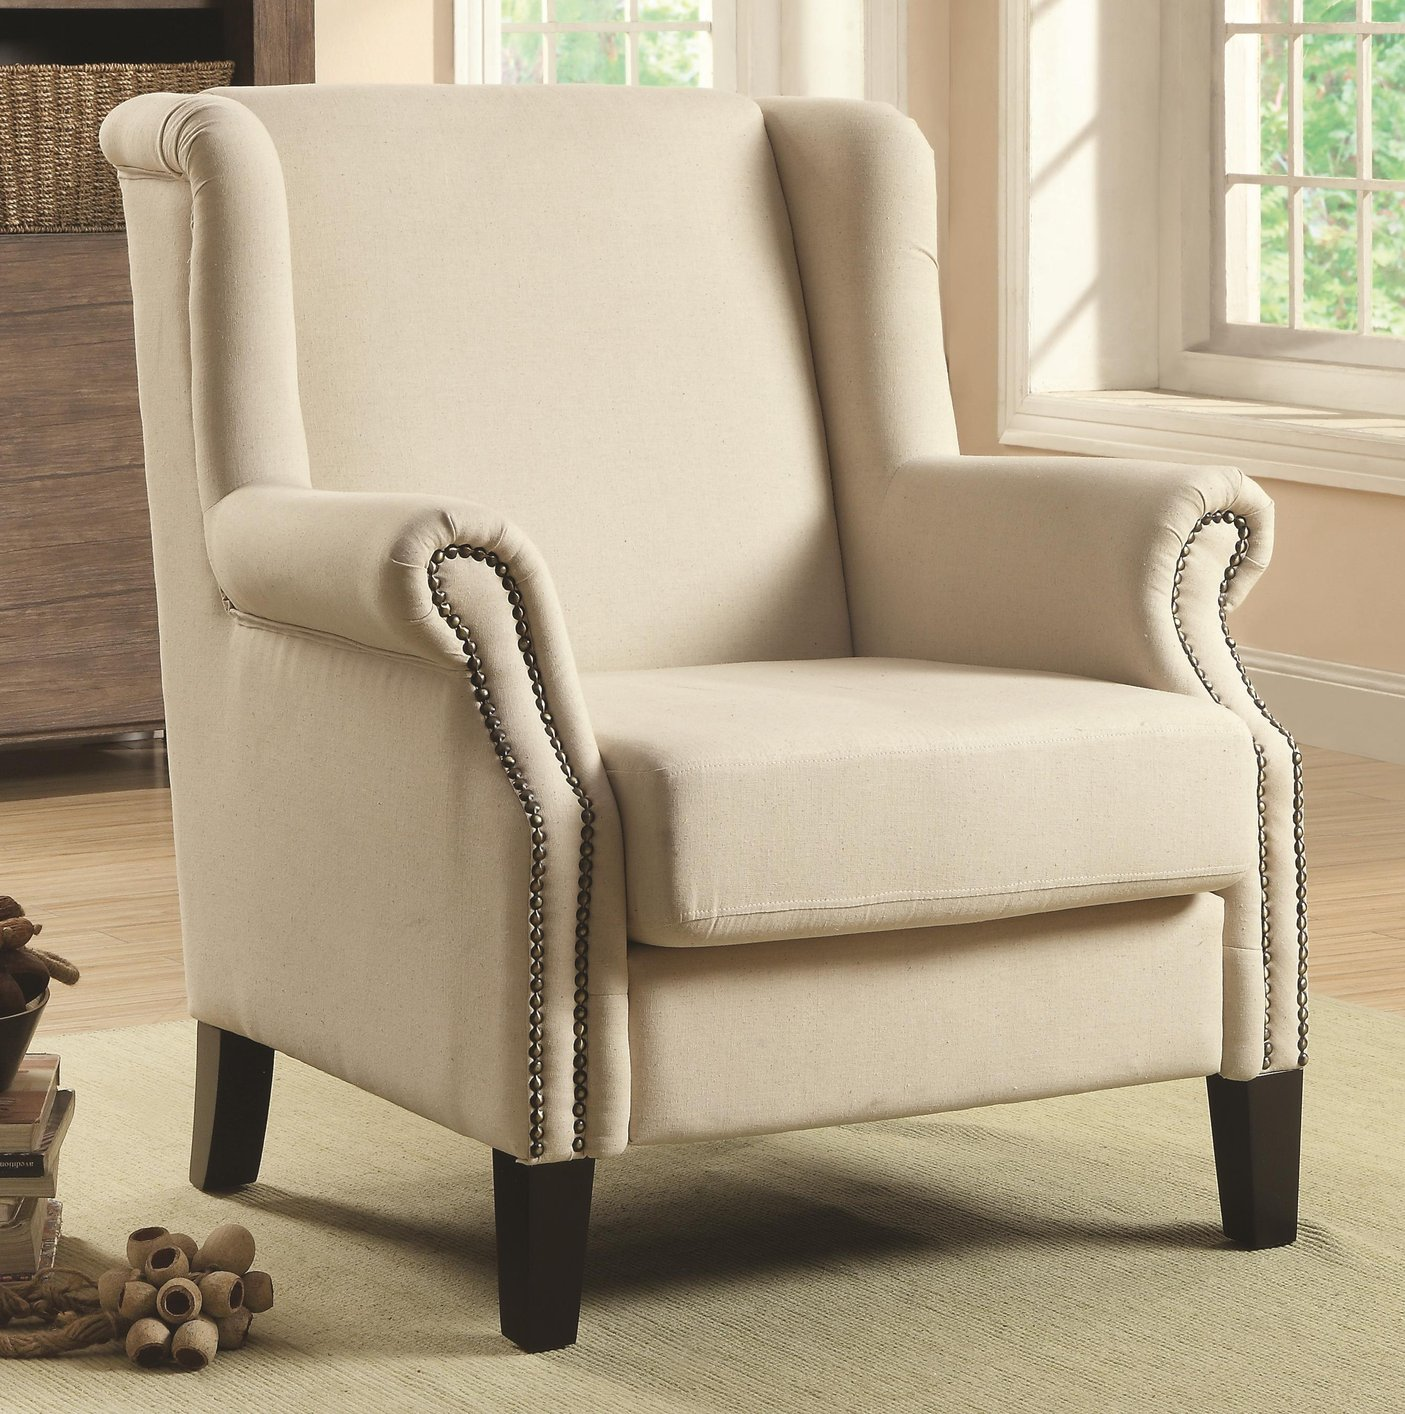 Beige Fabric Accent Chair - Steal-A-Sofa Furniture Outlet Los Angeles CA